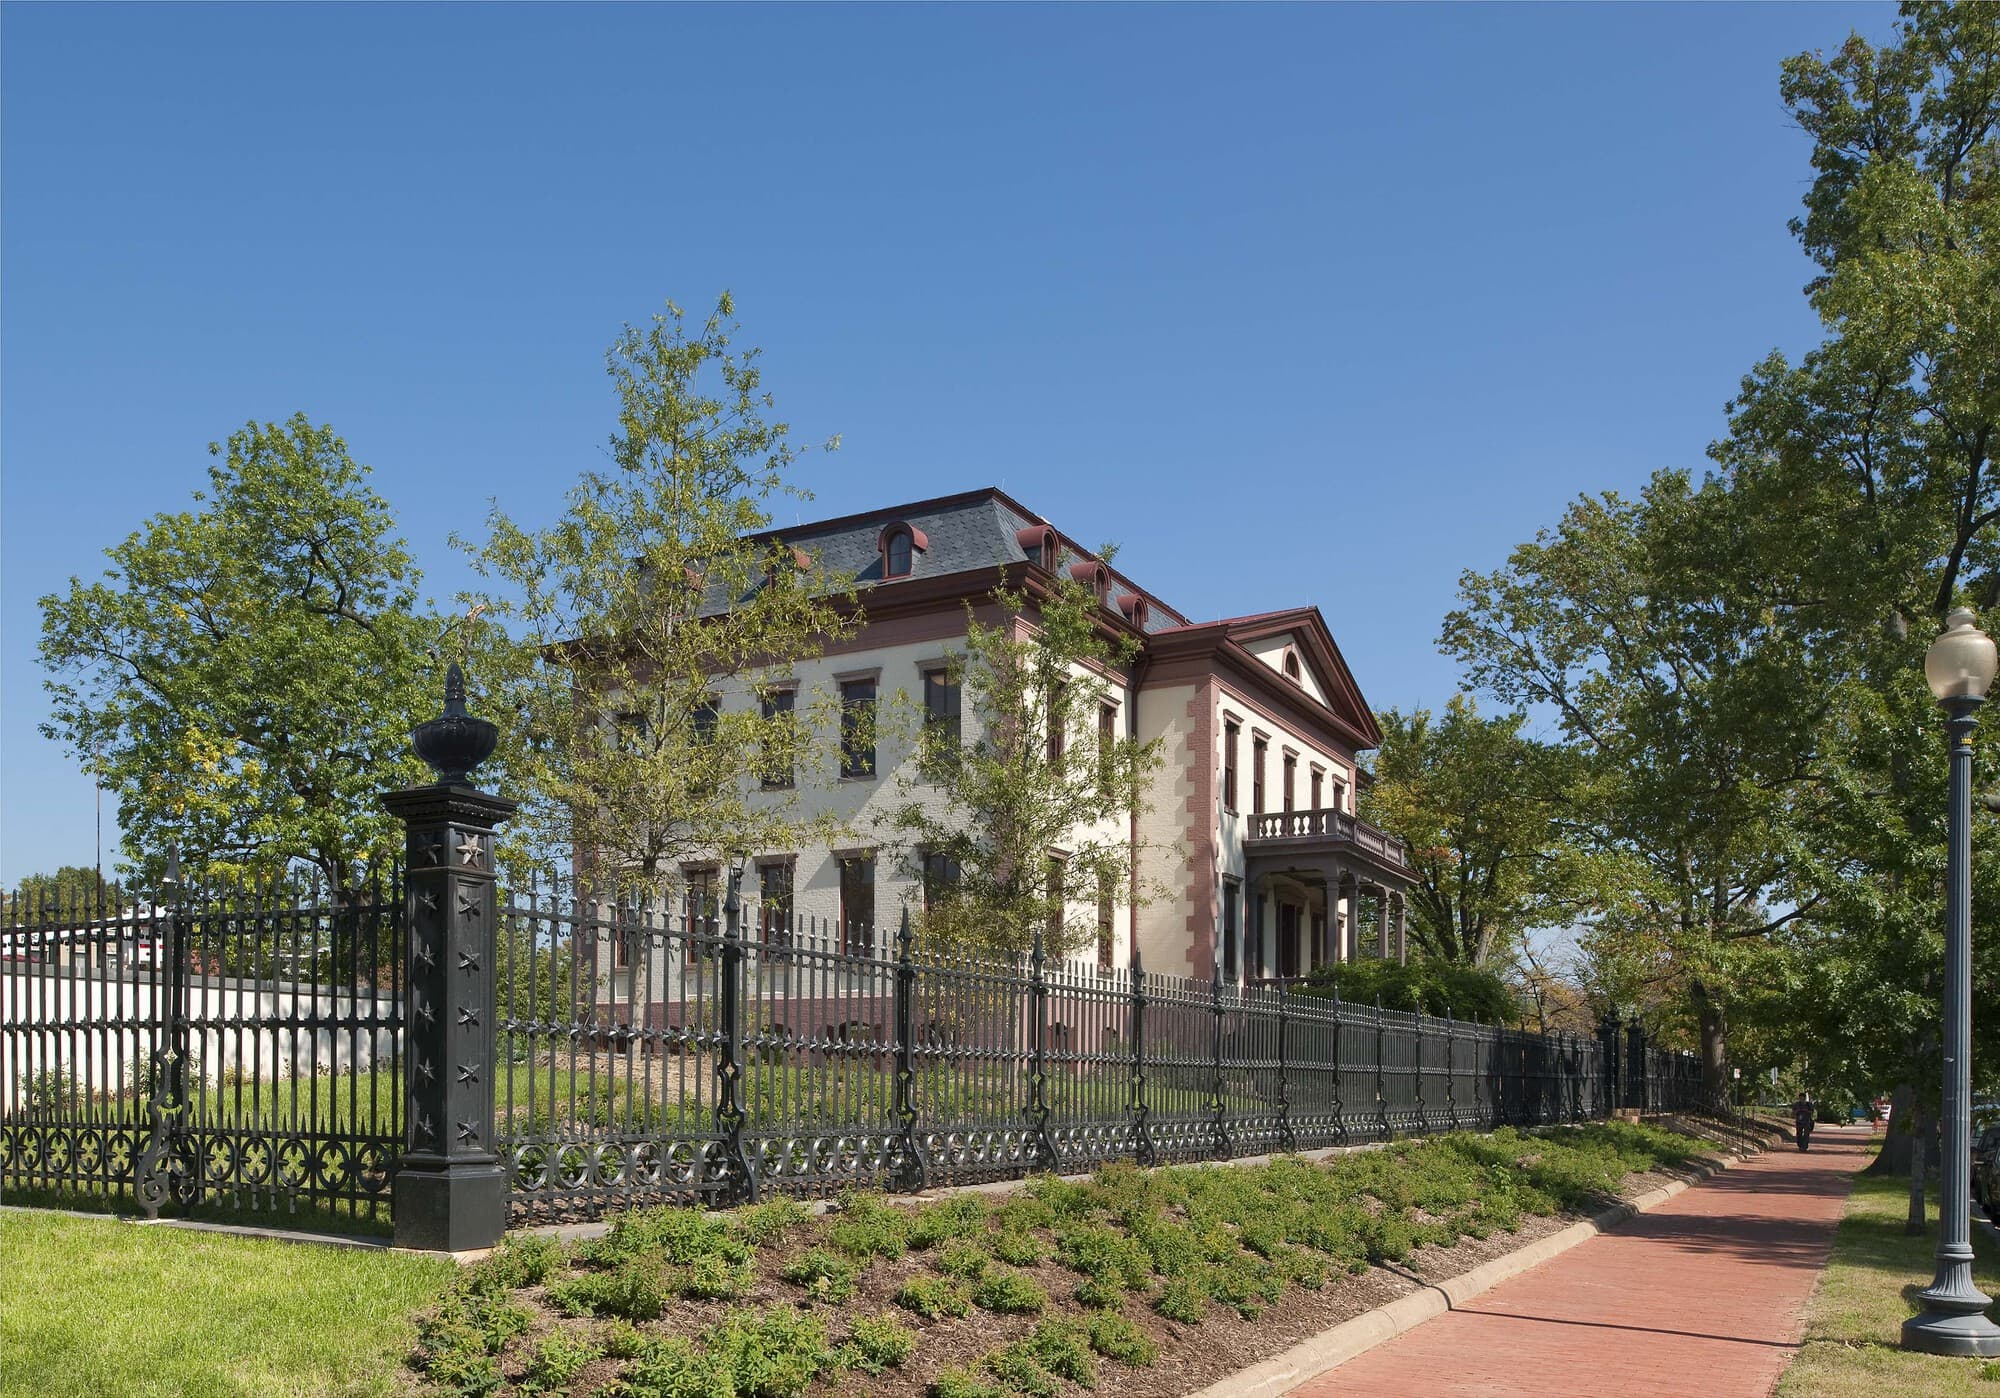 The Hill Center at the Old Naval Hospital